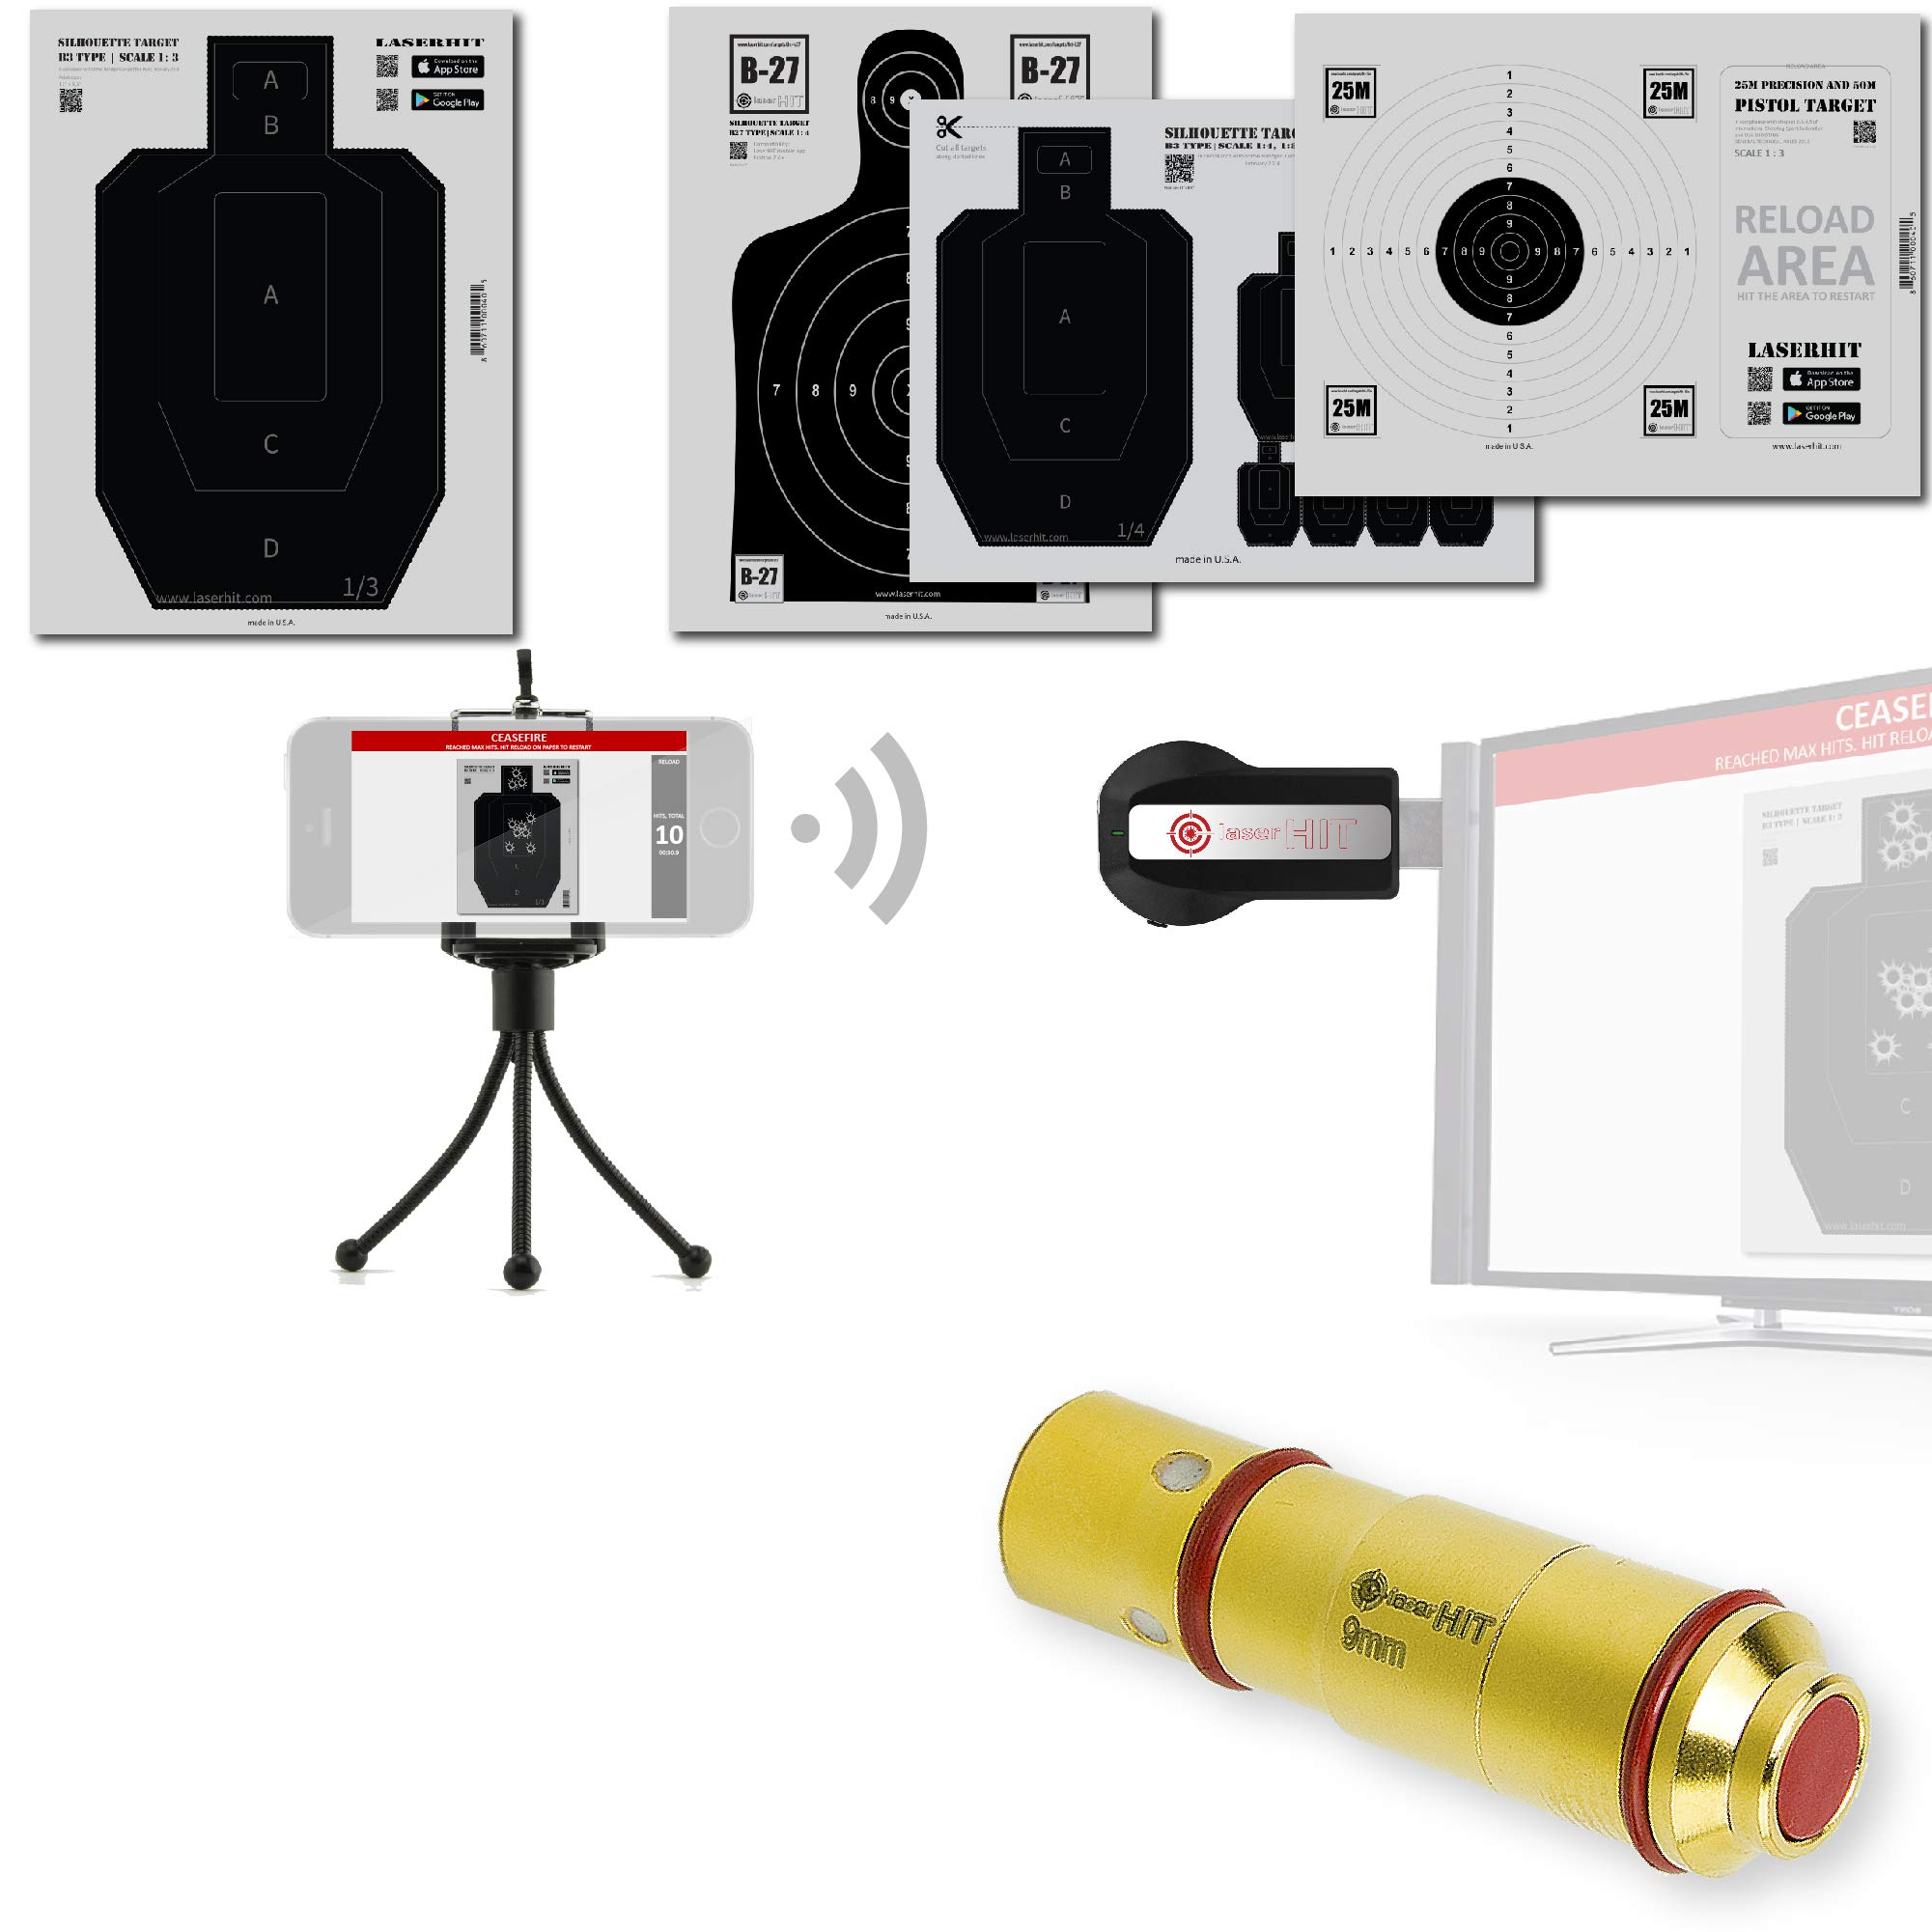 LaserHIT Dry Fire Training Kit (iOS, 9mm/HD Wireless Mini)